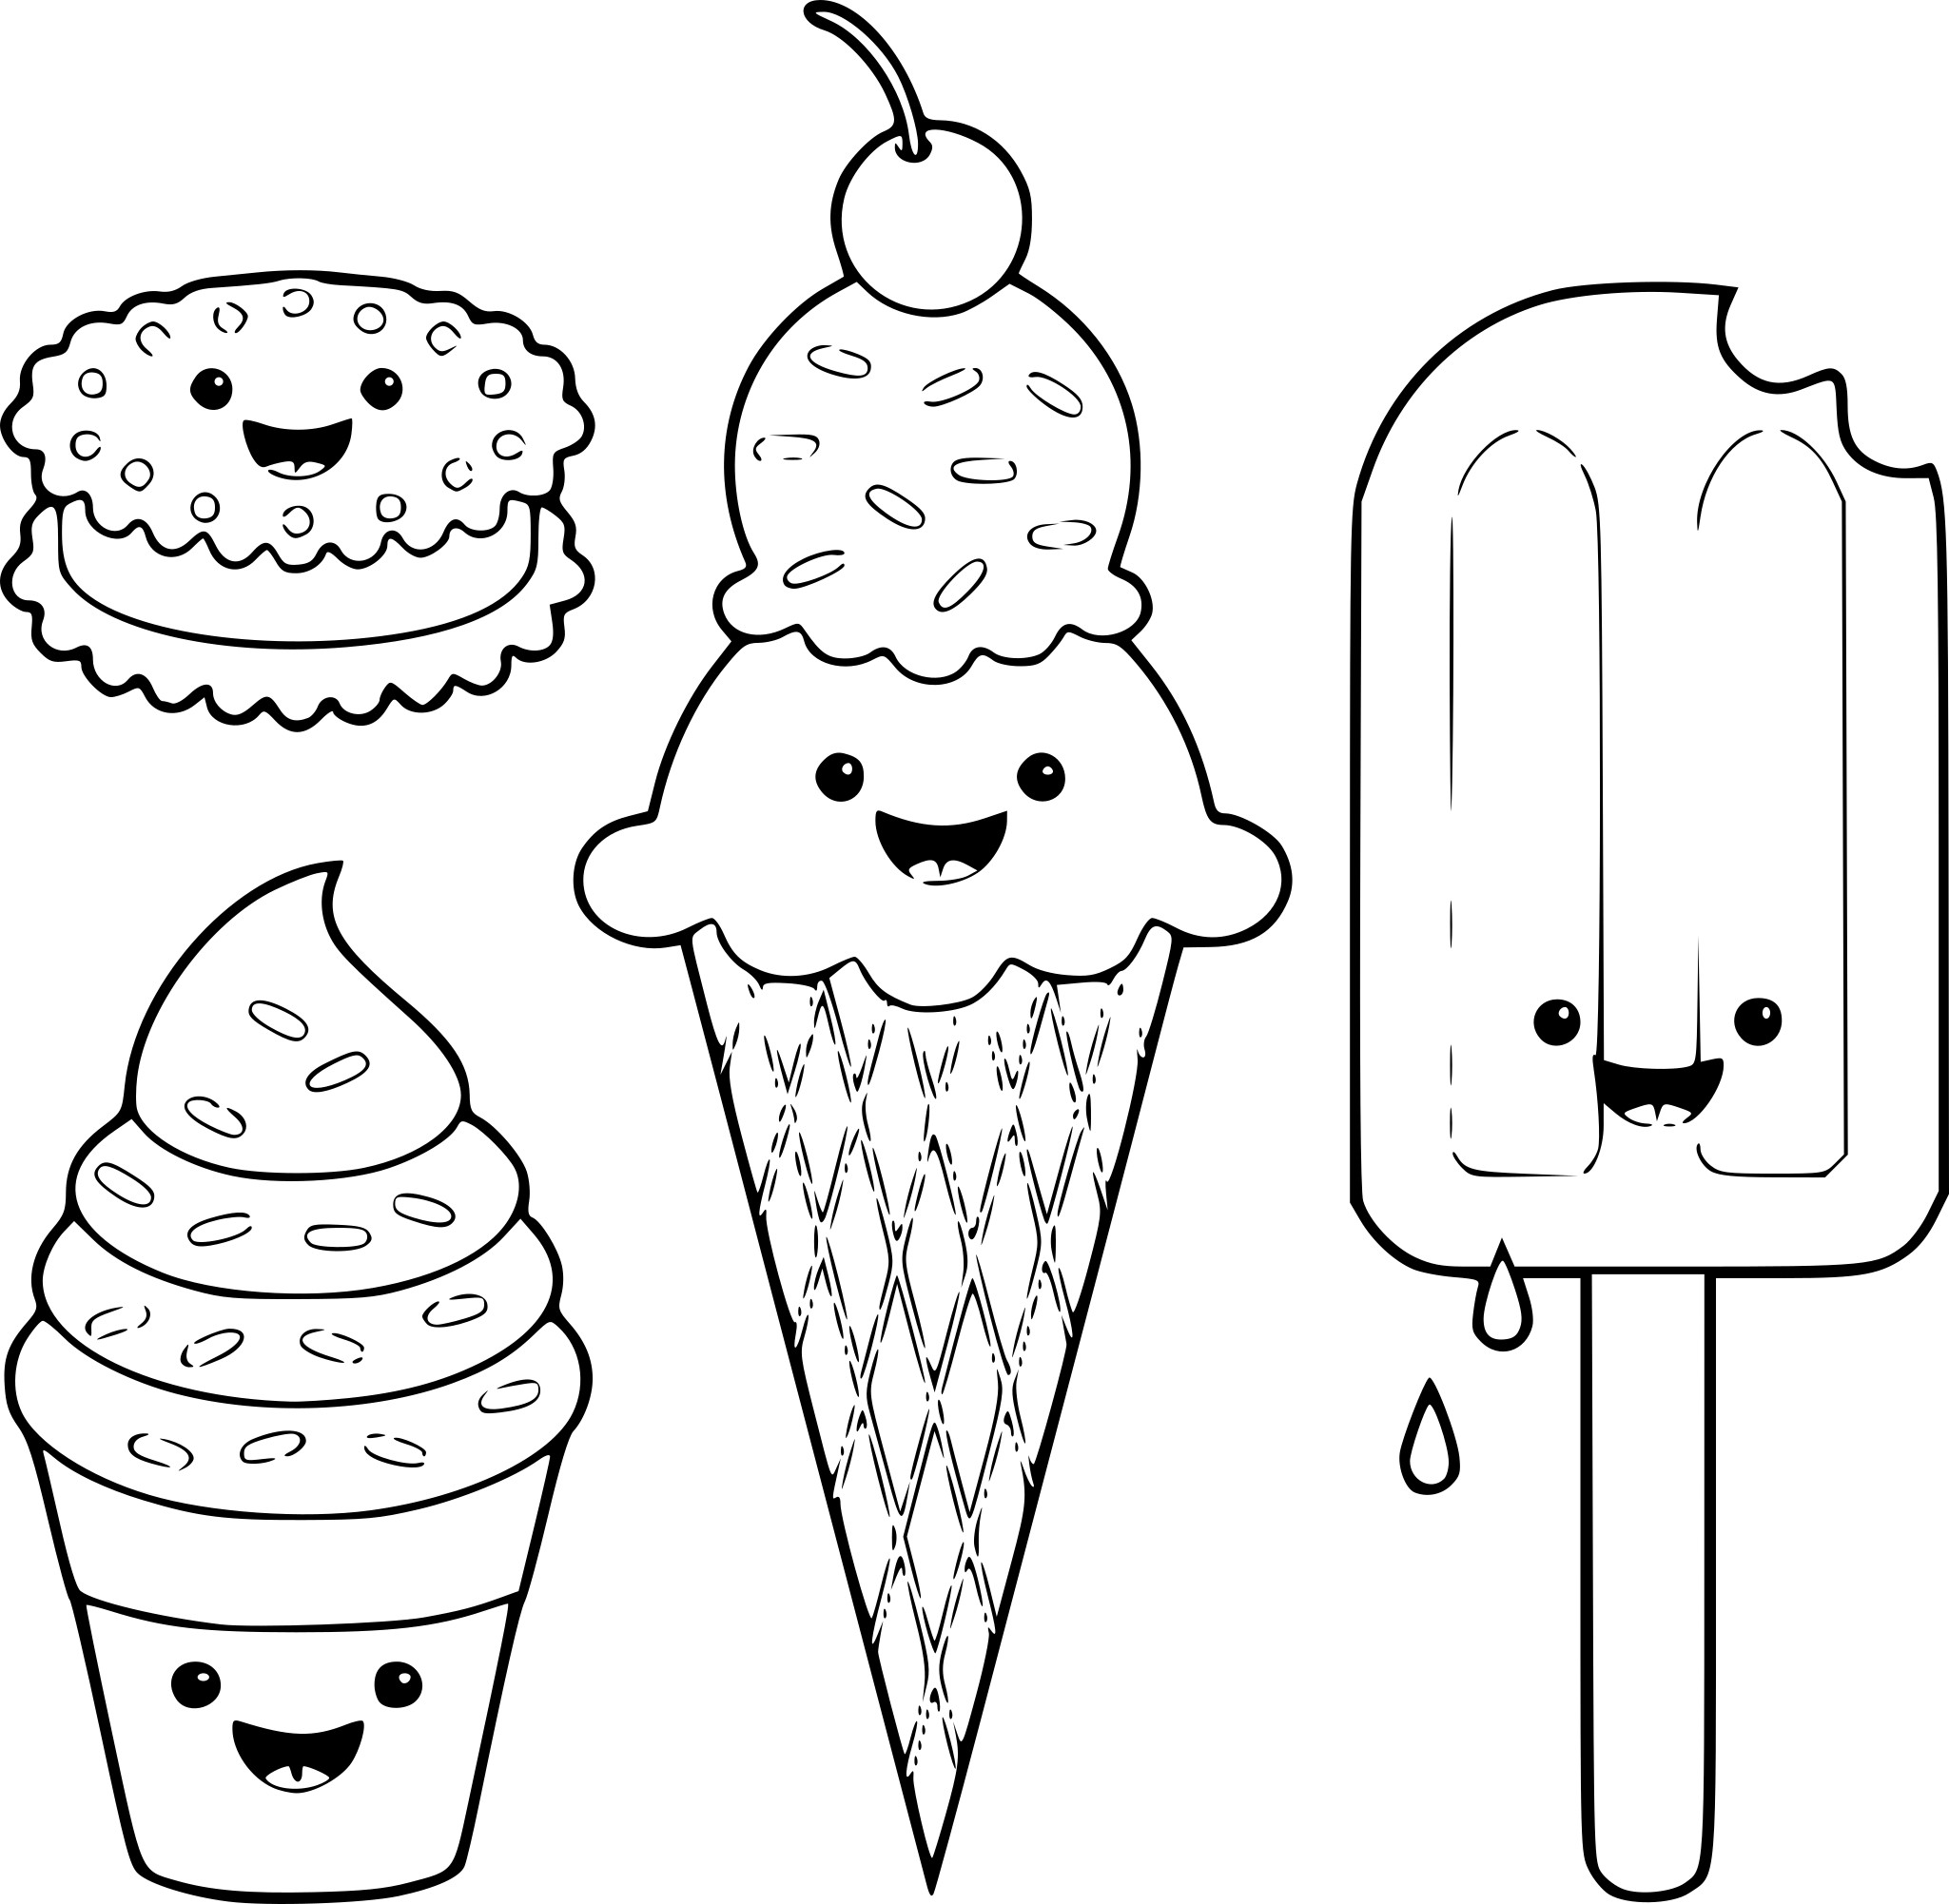 Coloriage Kawaii Glace